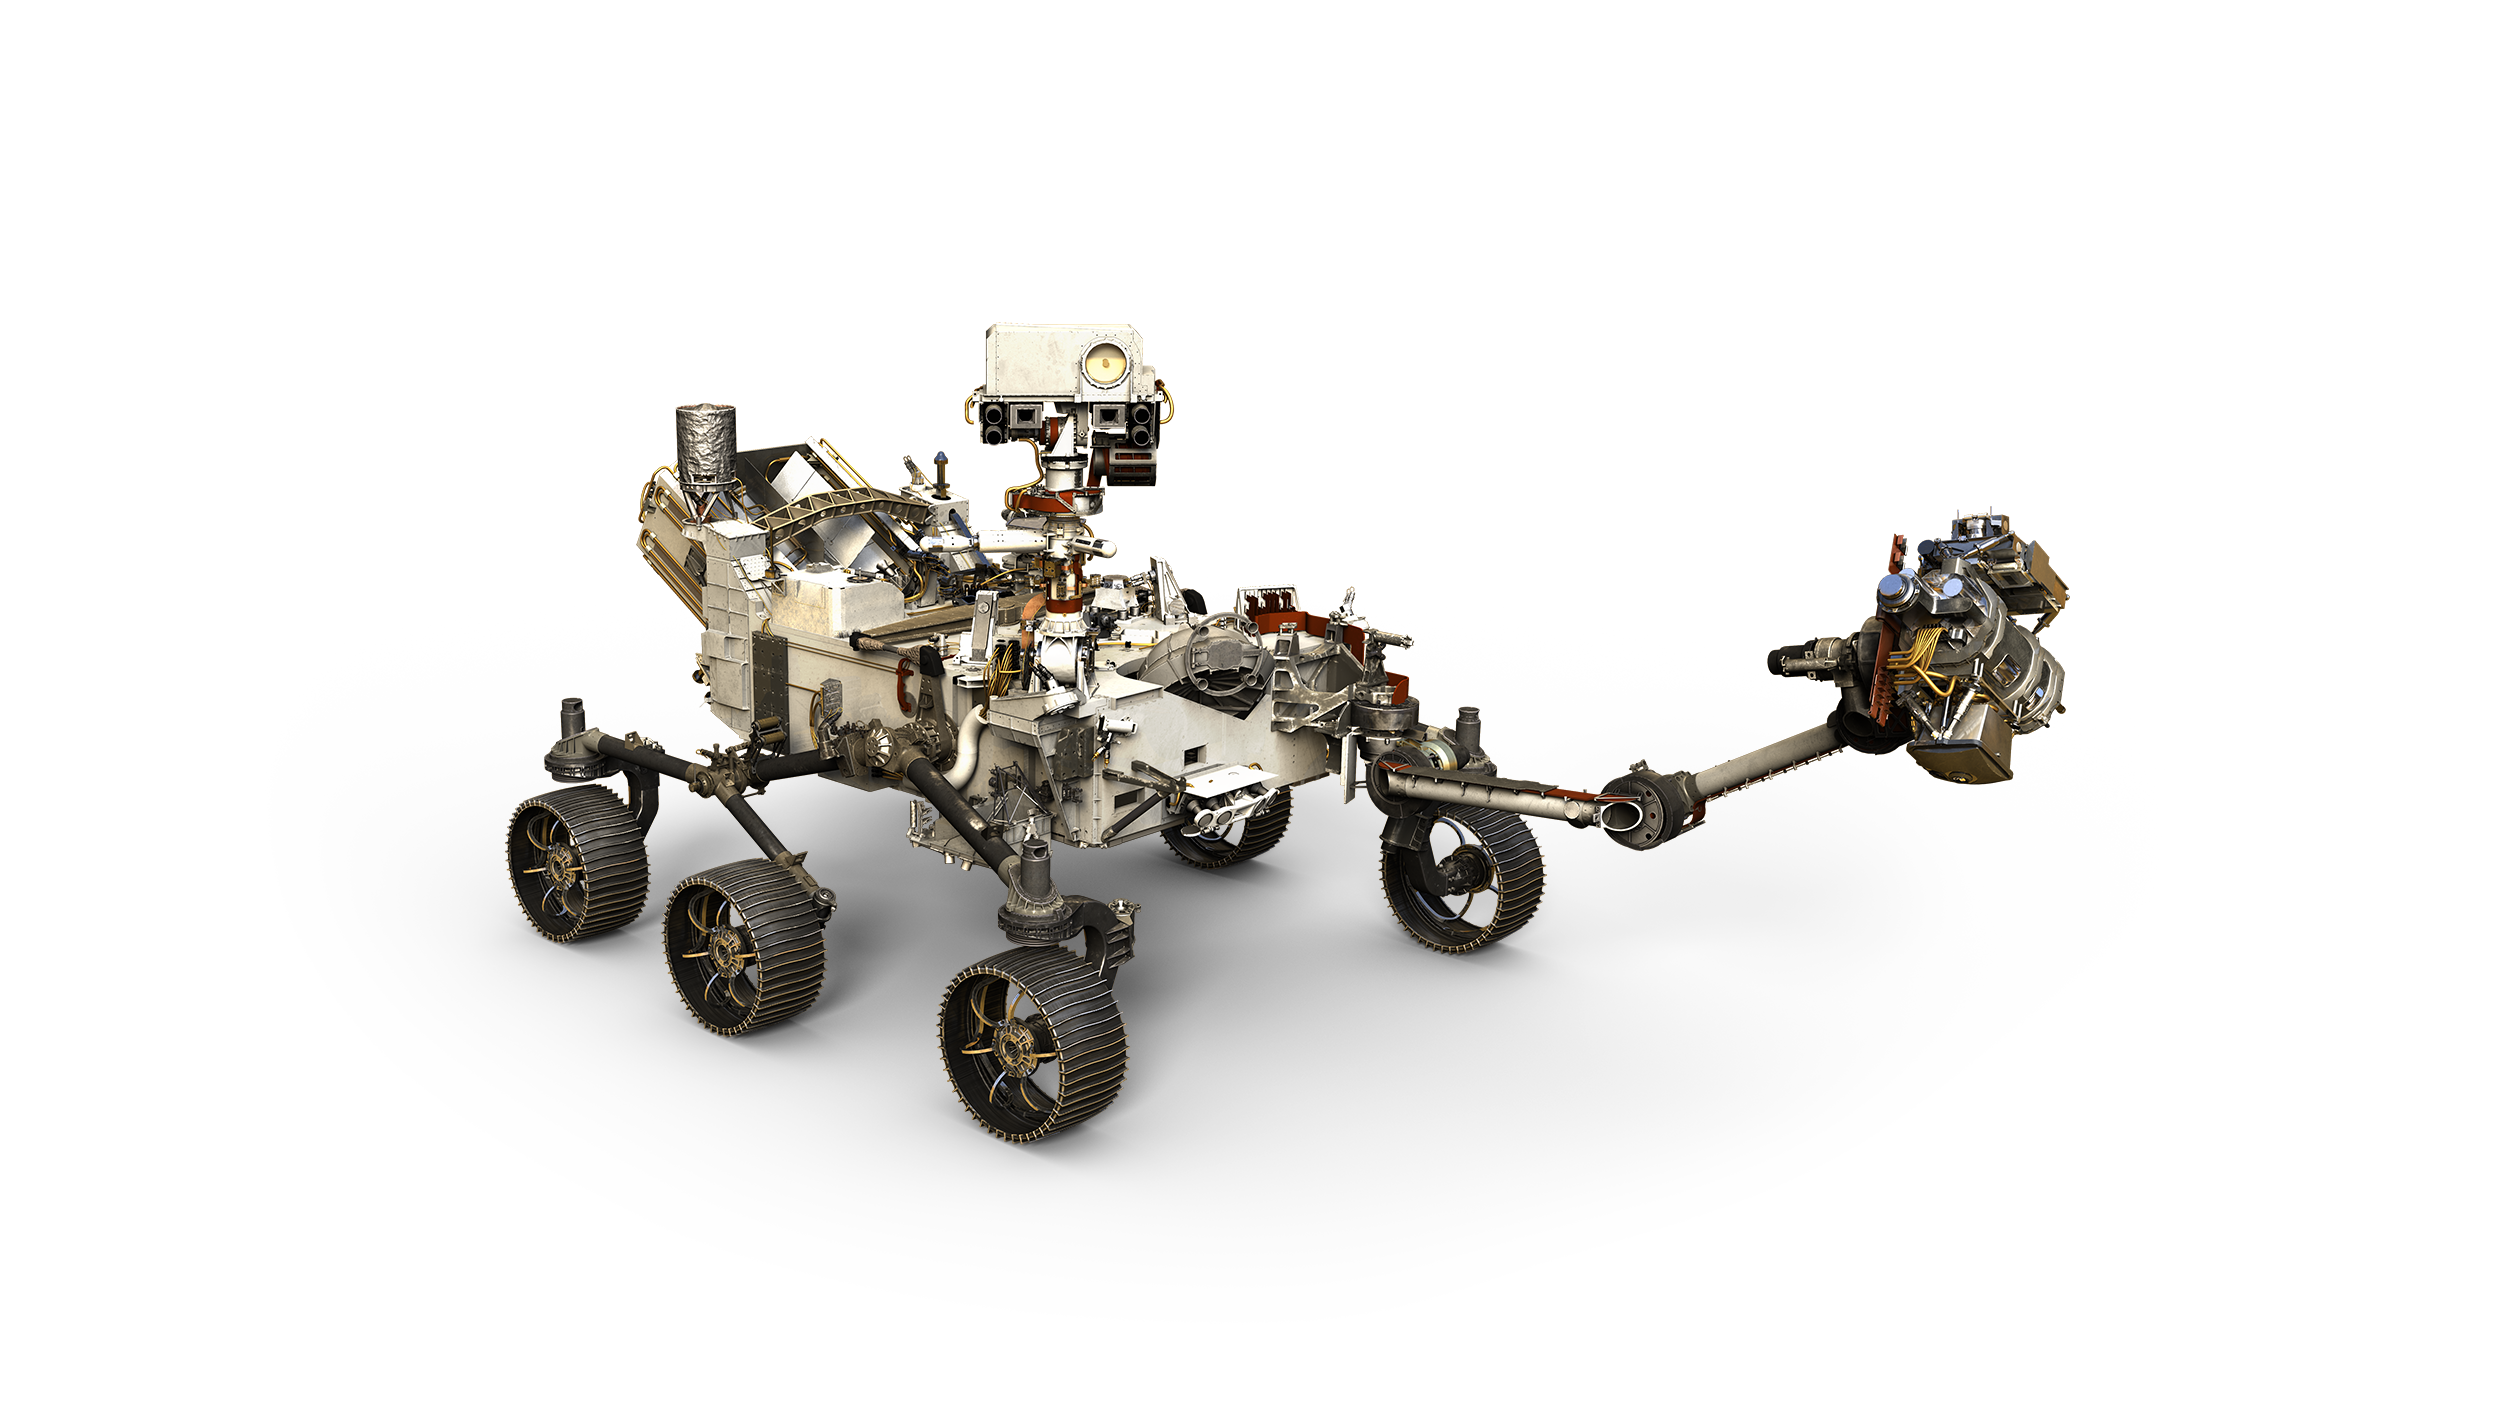 mars rover 2020 esa - photo #29